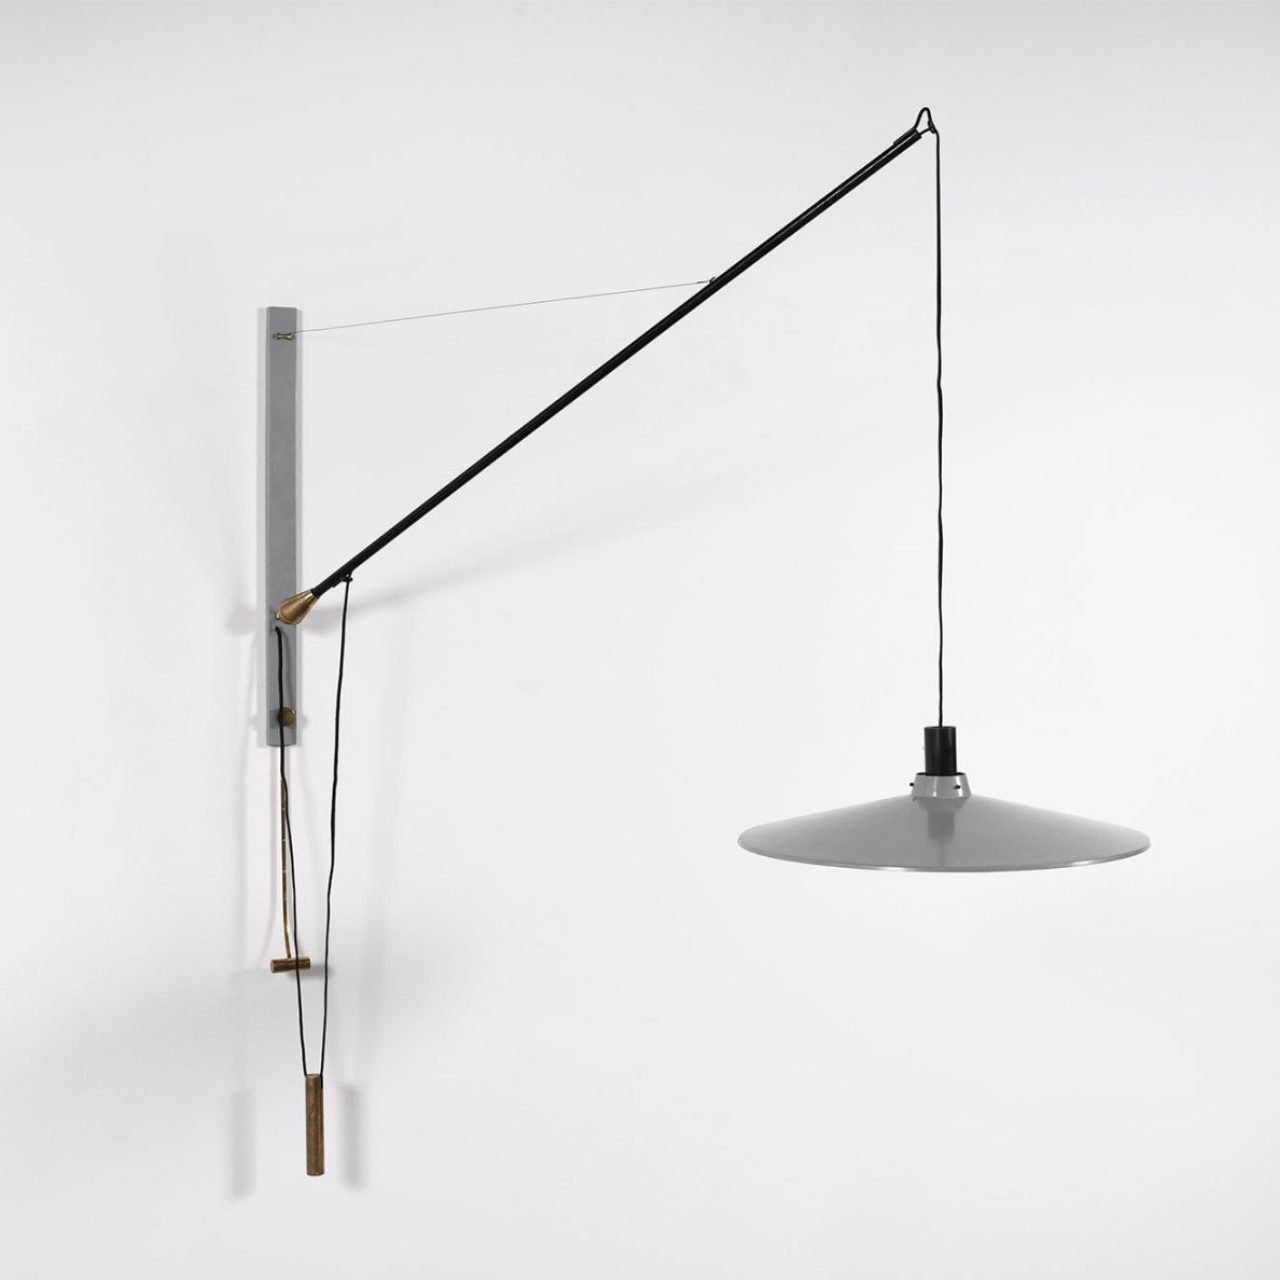 Arteluce Wall Lamp Model 181 with electric cord that allows for adjusting its height by Italian designer Gino Sarfatti at Italian design and furniture gallery Casati Gallery